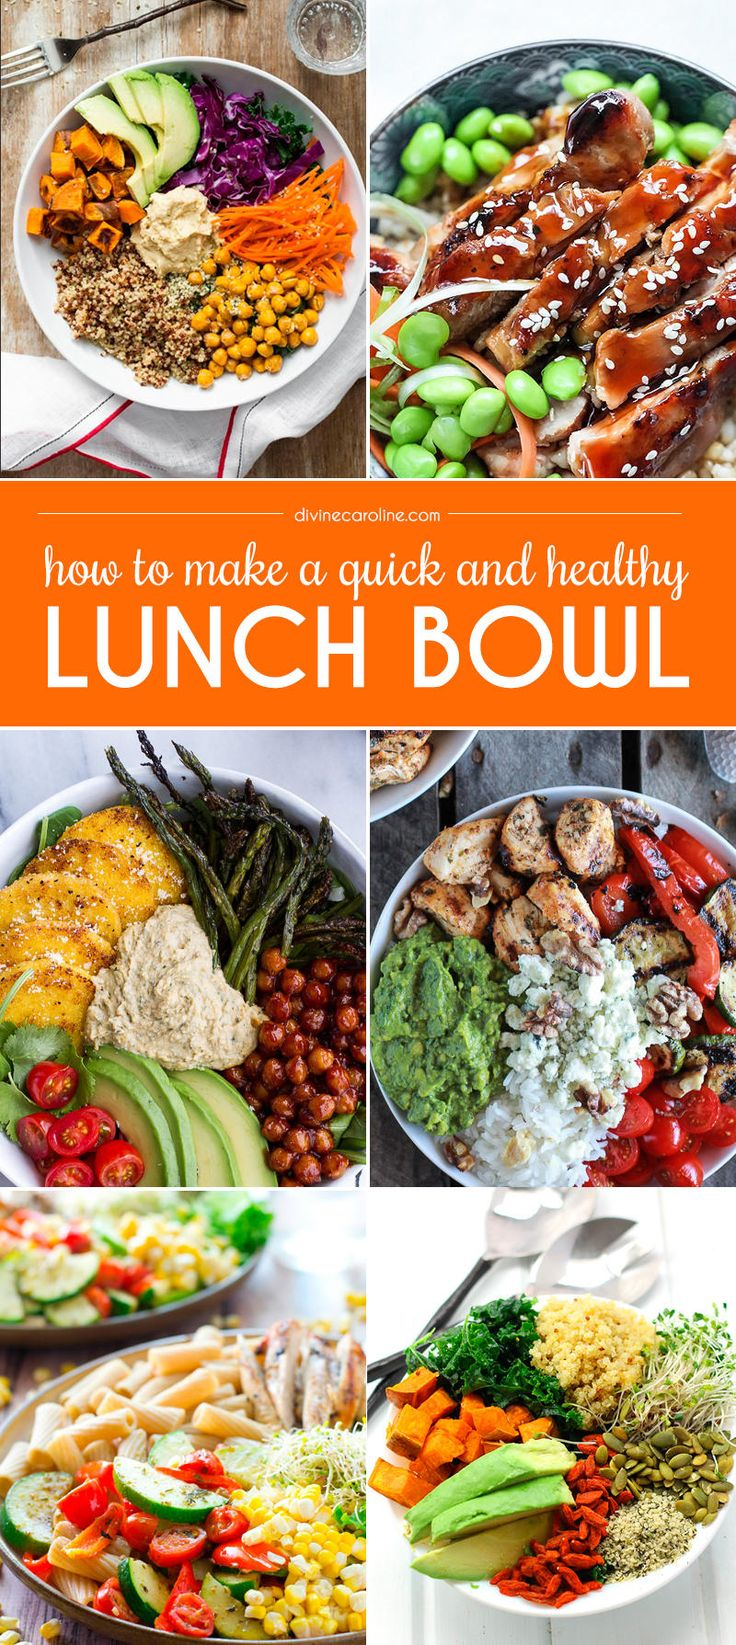 Ditch your boring sandwich or salad. Try a healthy lunch bowl that is filling, balanced, and nutritious instead.